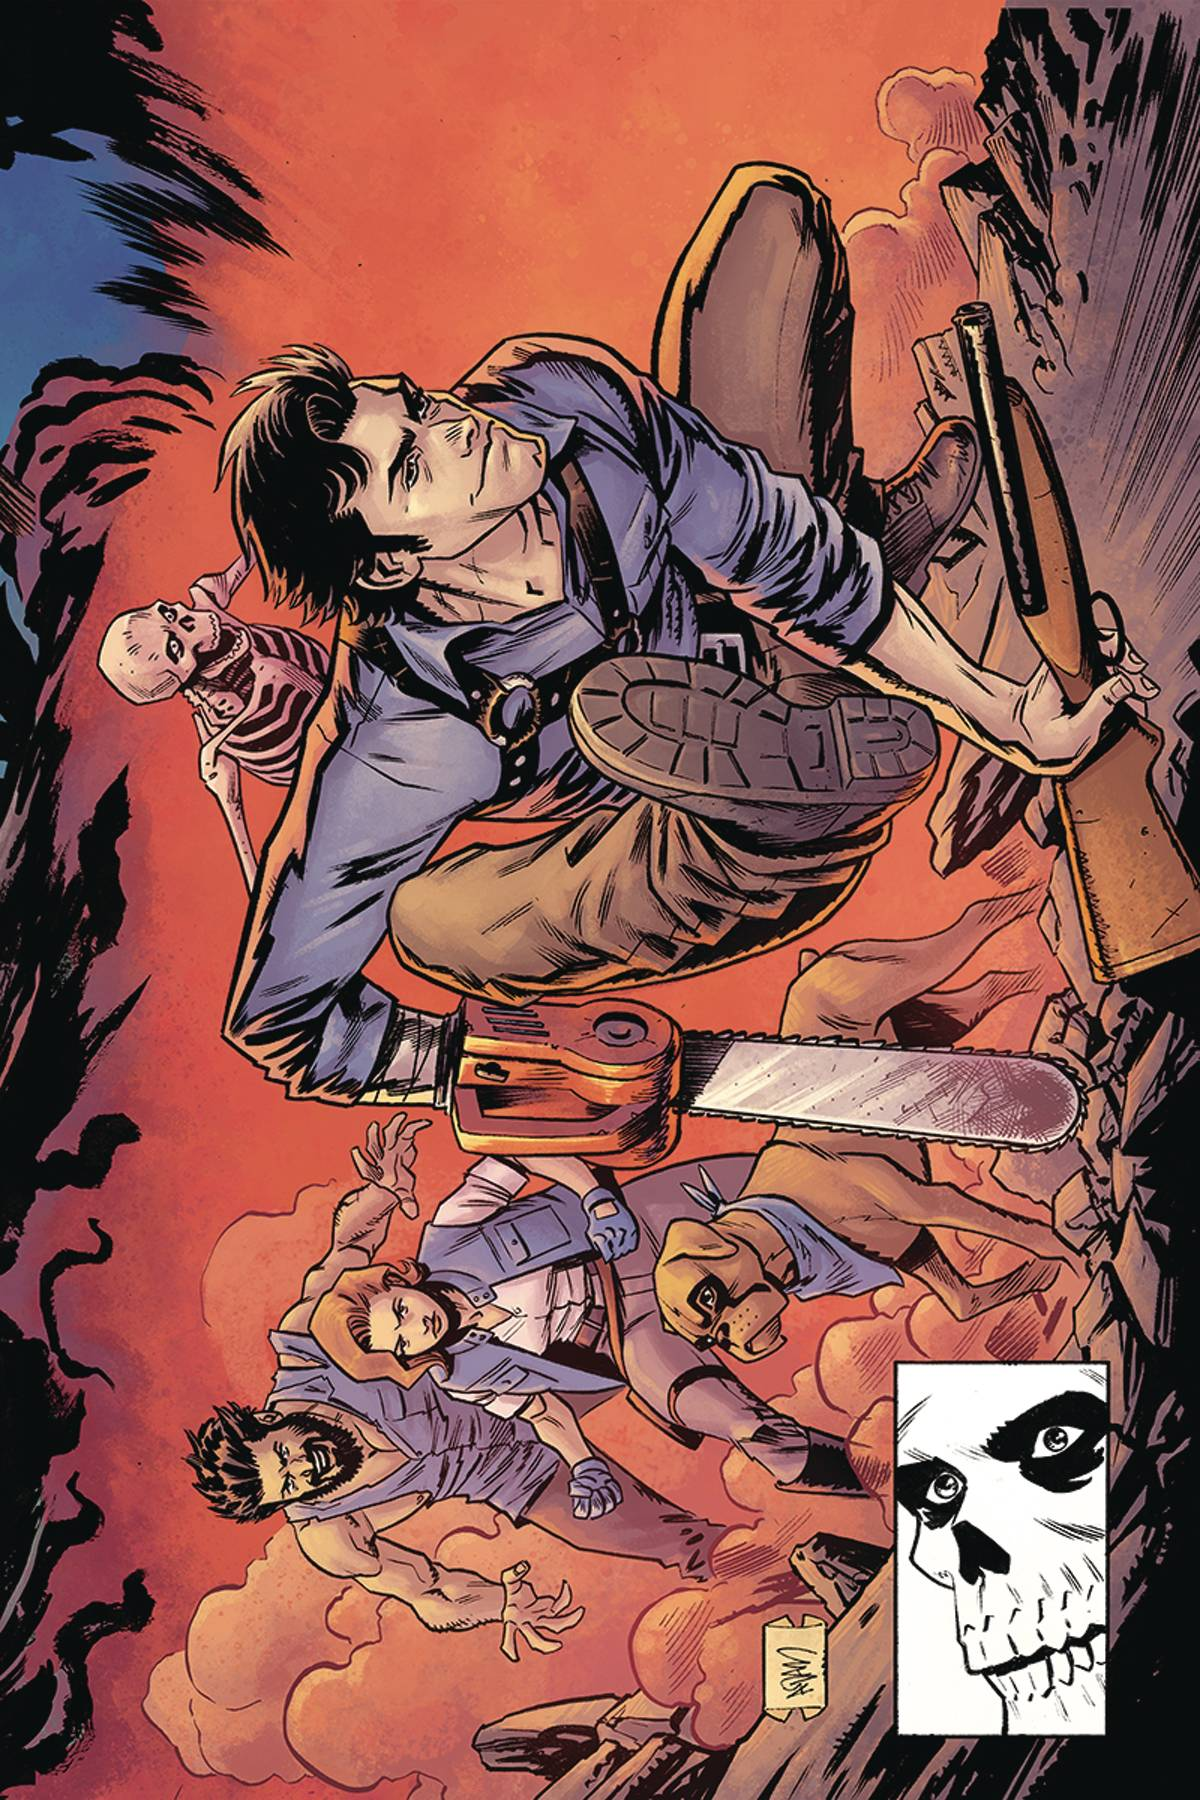 DEATH TO ARMY OF DARKNESS #3 15 COPY GORHAM HOMAGE VIRGIN IN